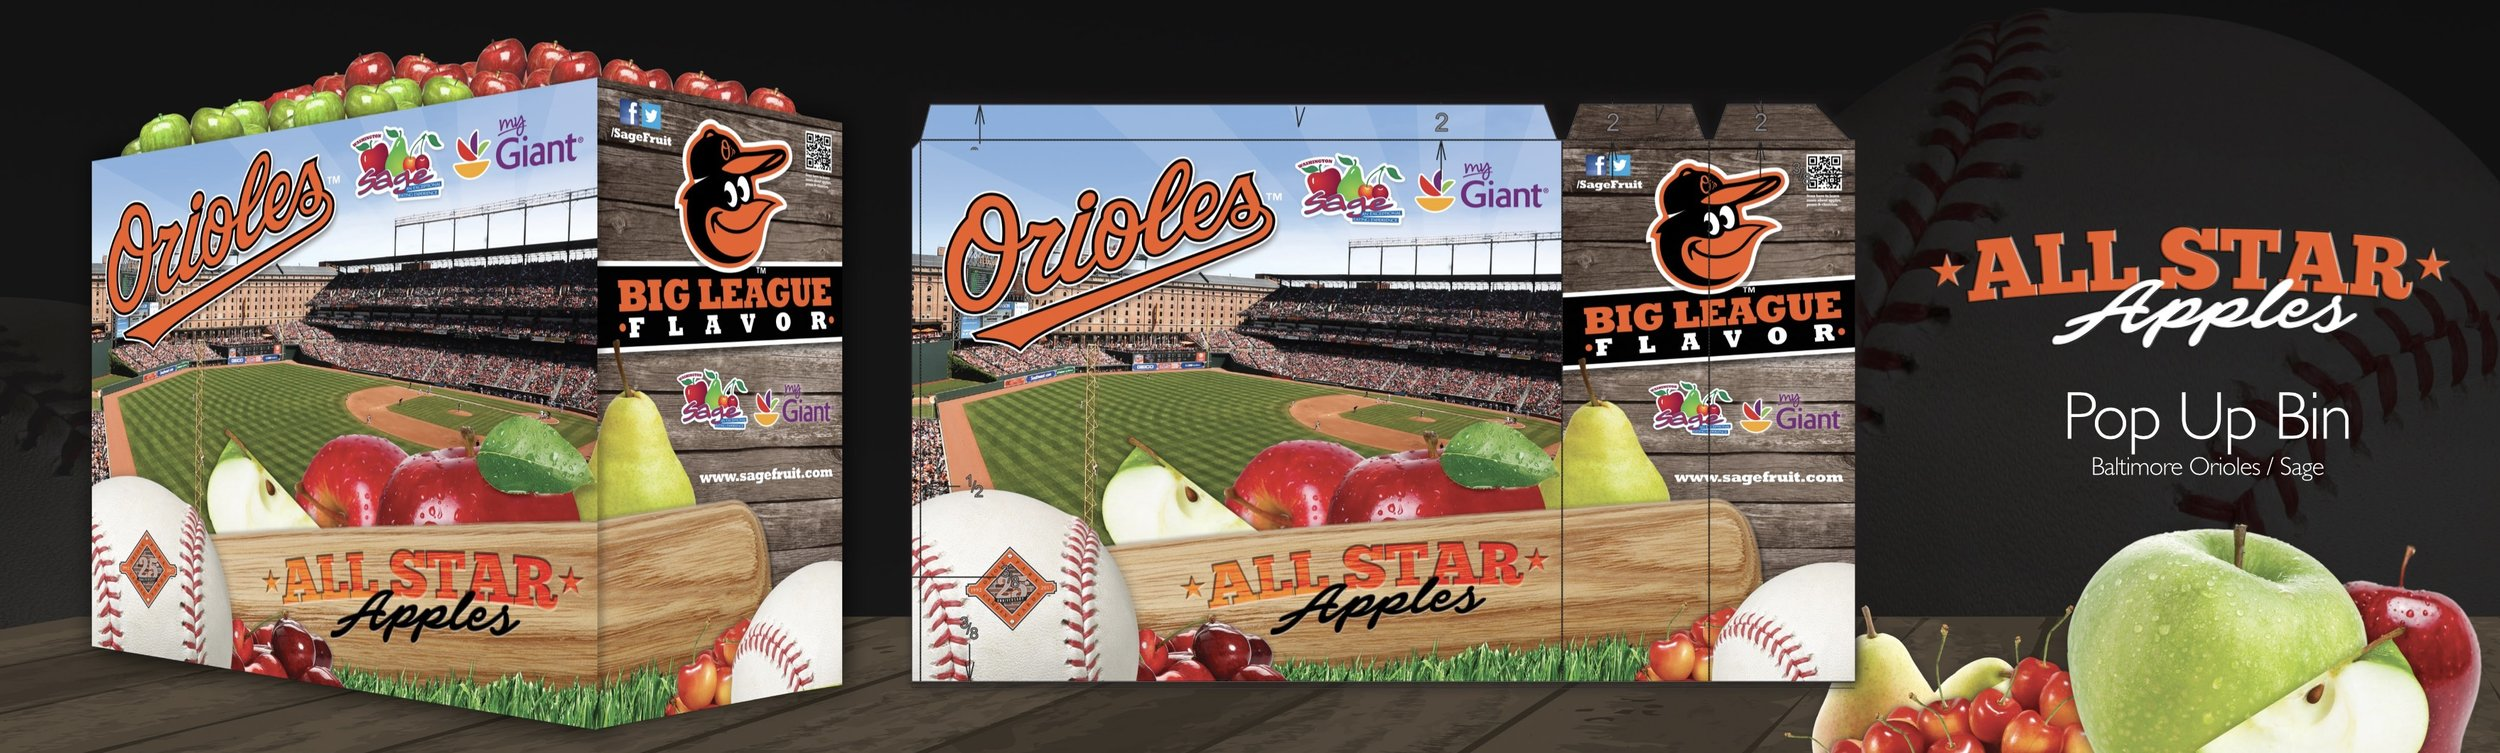 Apple Point of Sale display bins designed in collaboration with Sage Fruit and the Baltimore Orioles.